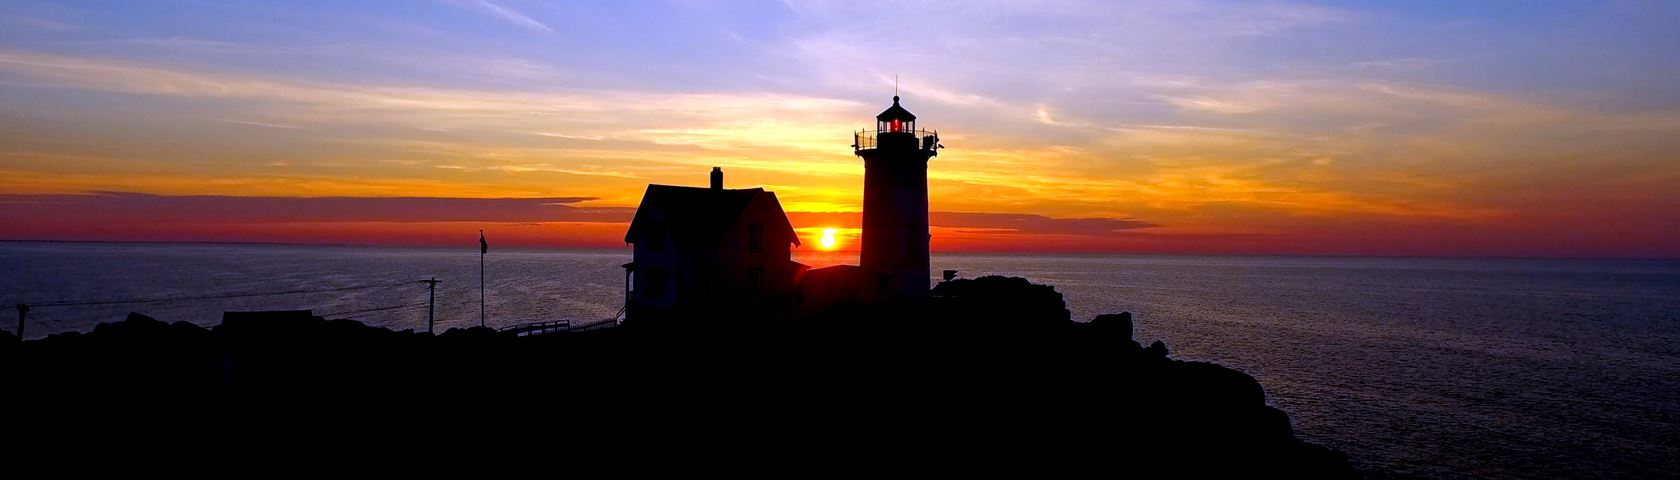 Sunrise at Nubble Lighthouse